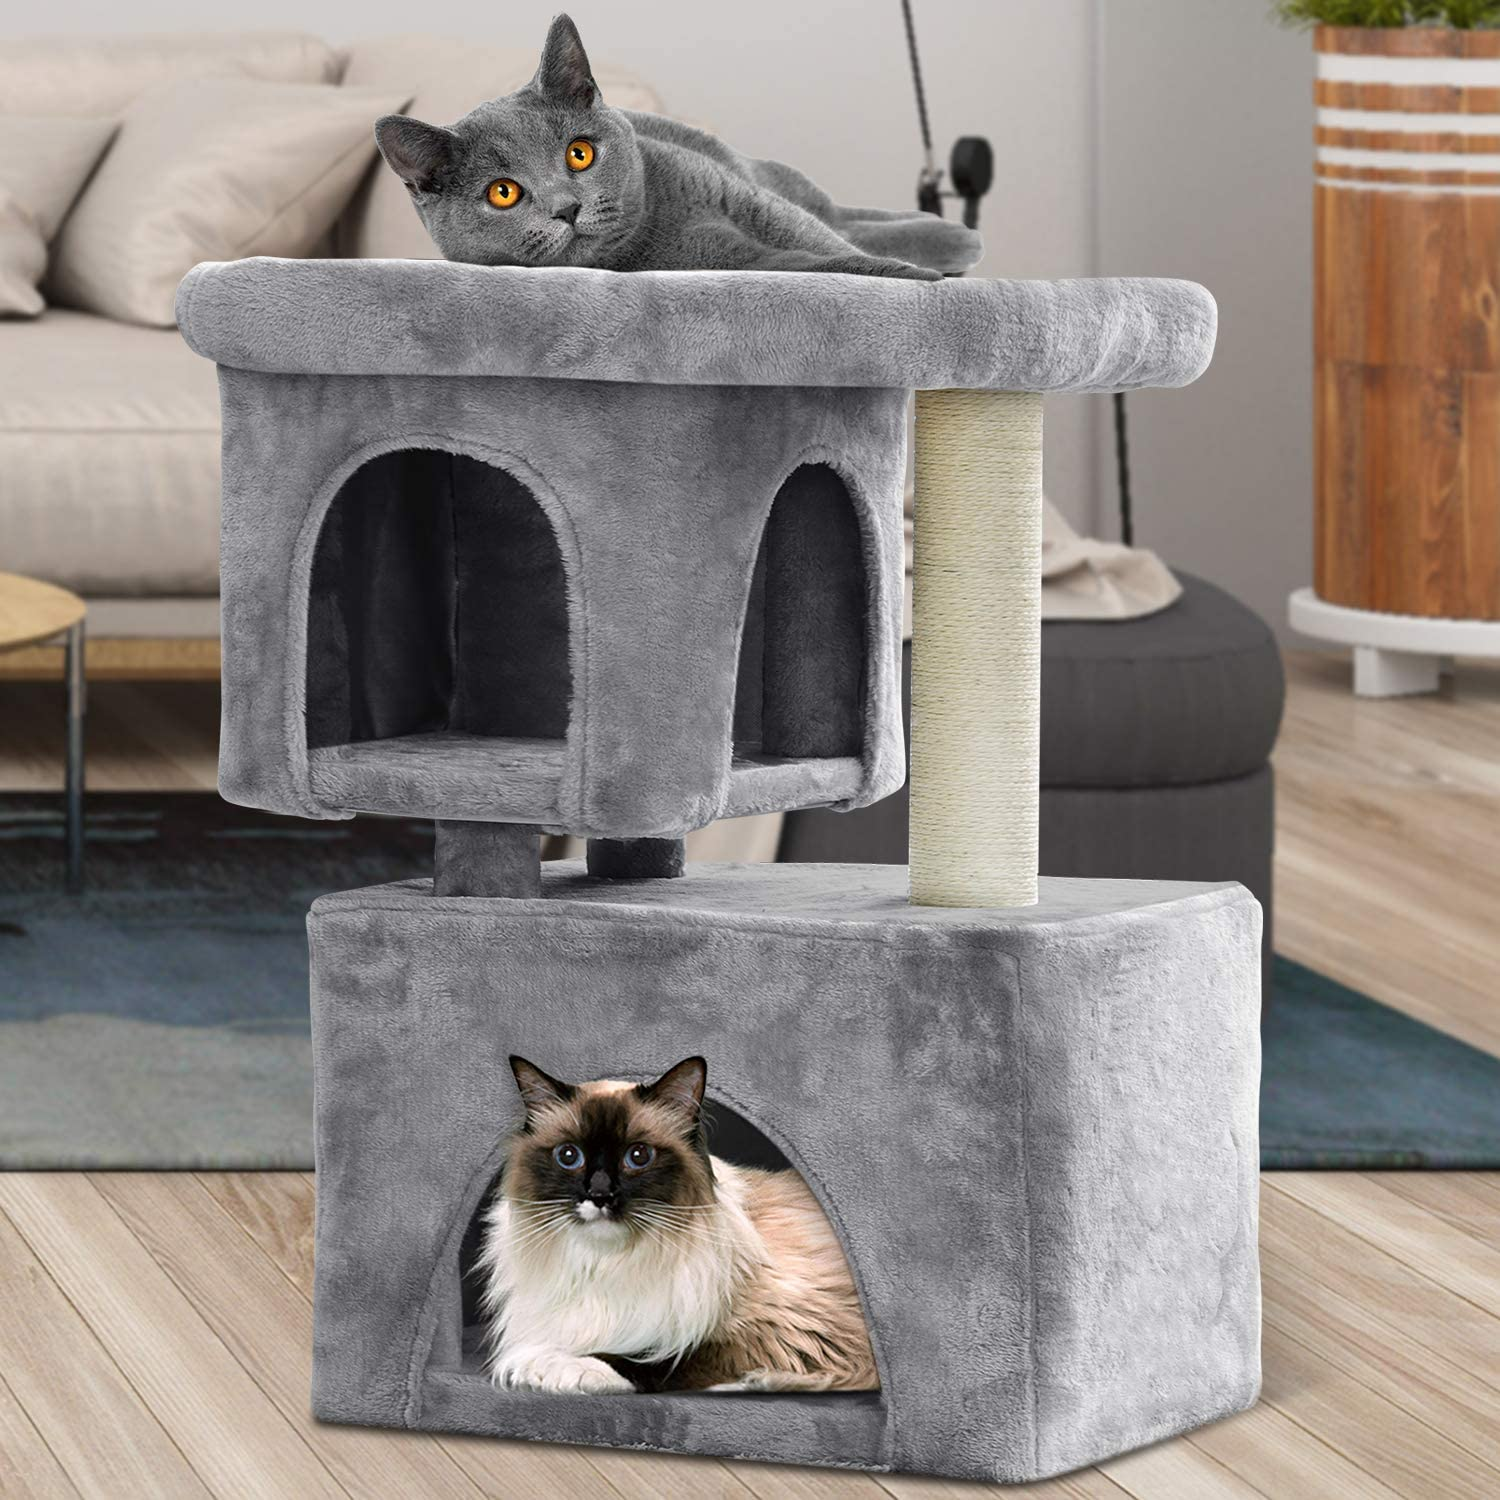 BEAU JARDIN Cat Tree for Large Cats Heavy Cat Condos and Towers for Big Cats with XL Condo and Perch Cat Tower with Scratching Post Cat Scratch Tree Furniture House Climbing Tower Kitty Condos